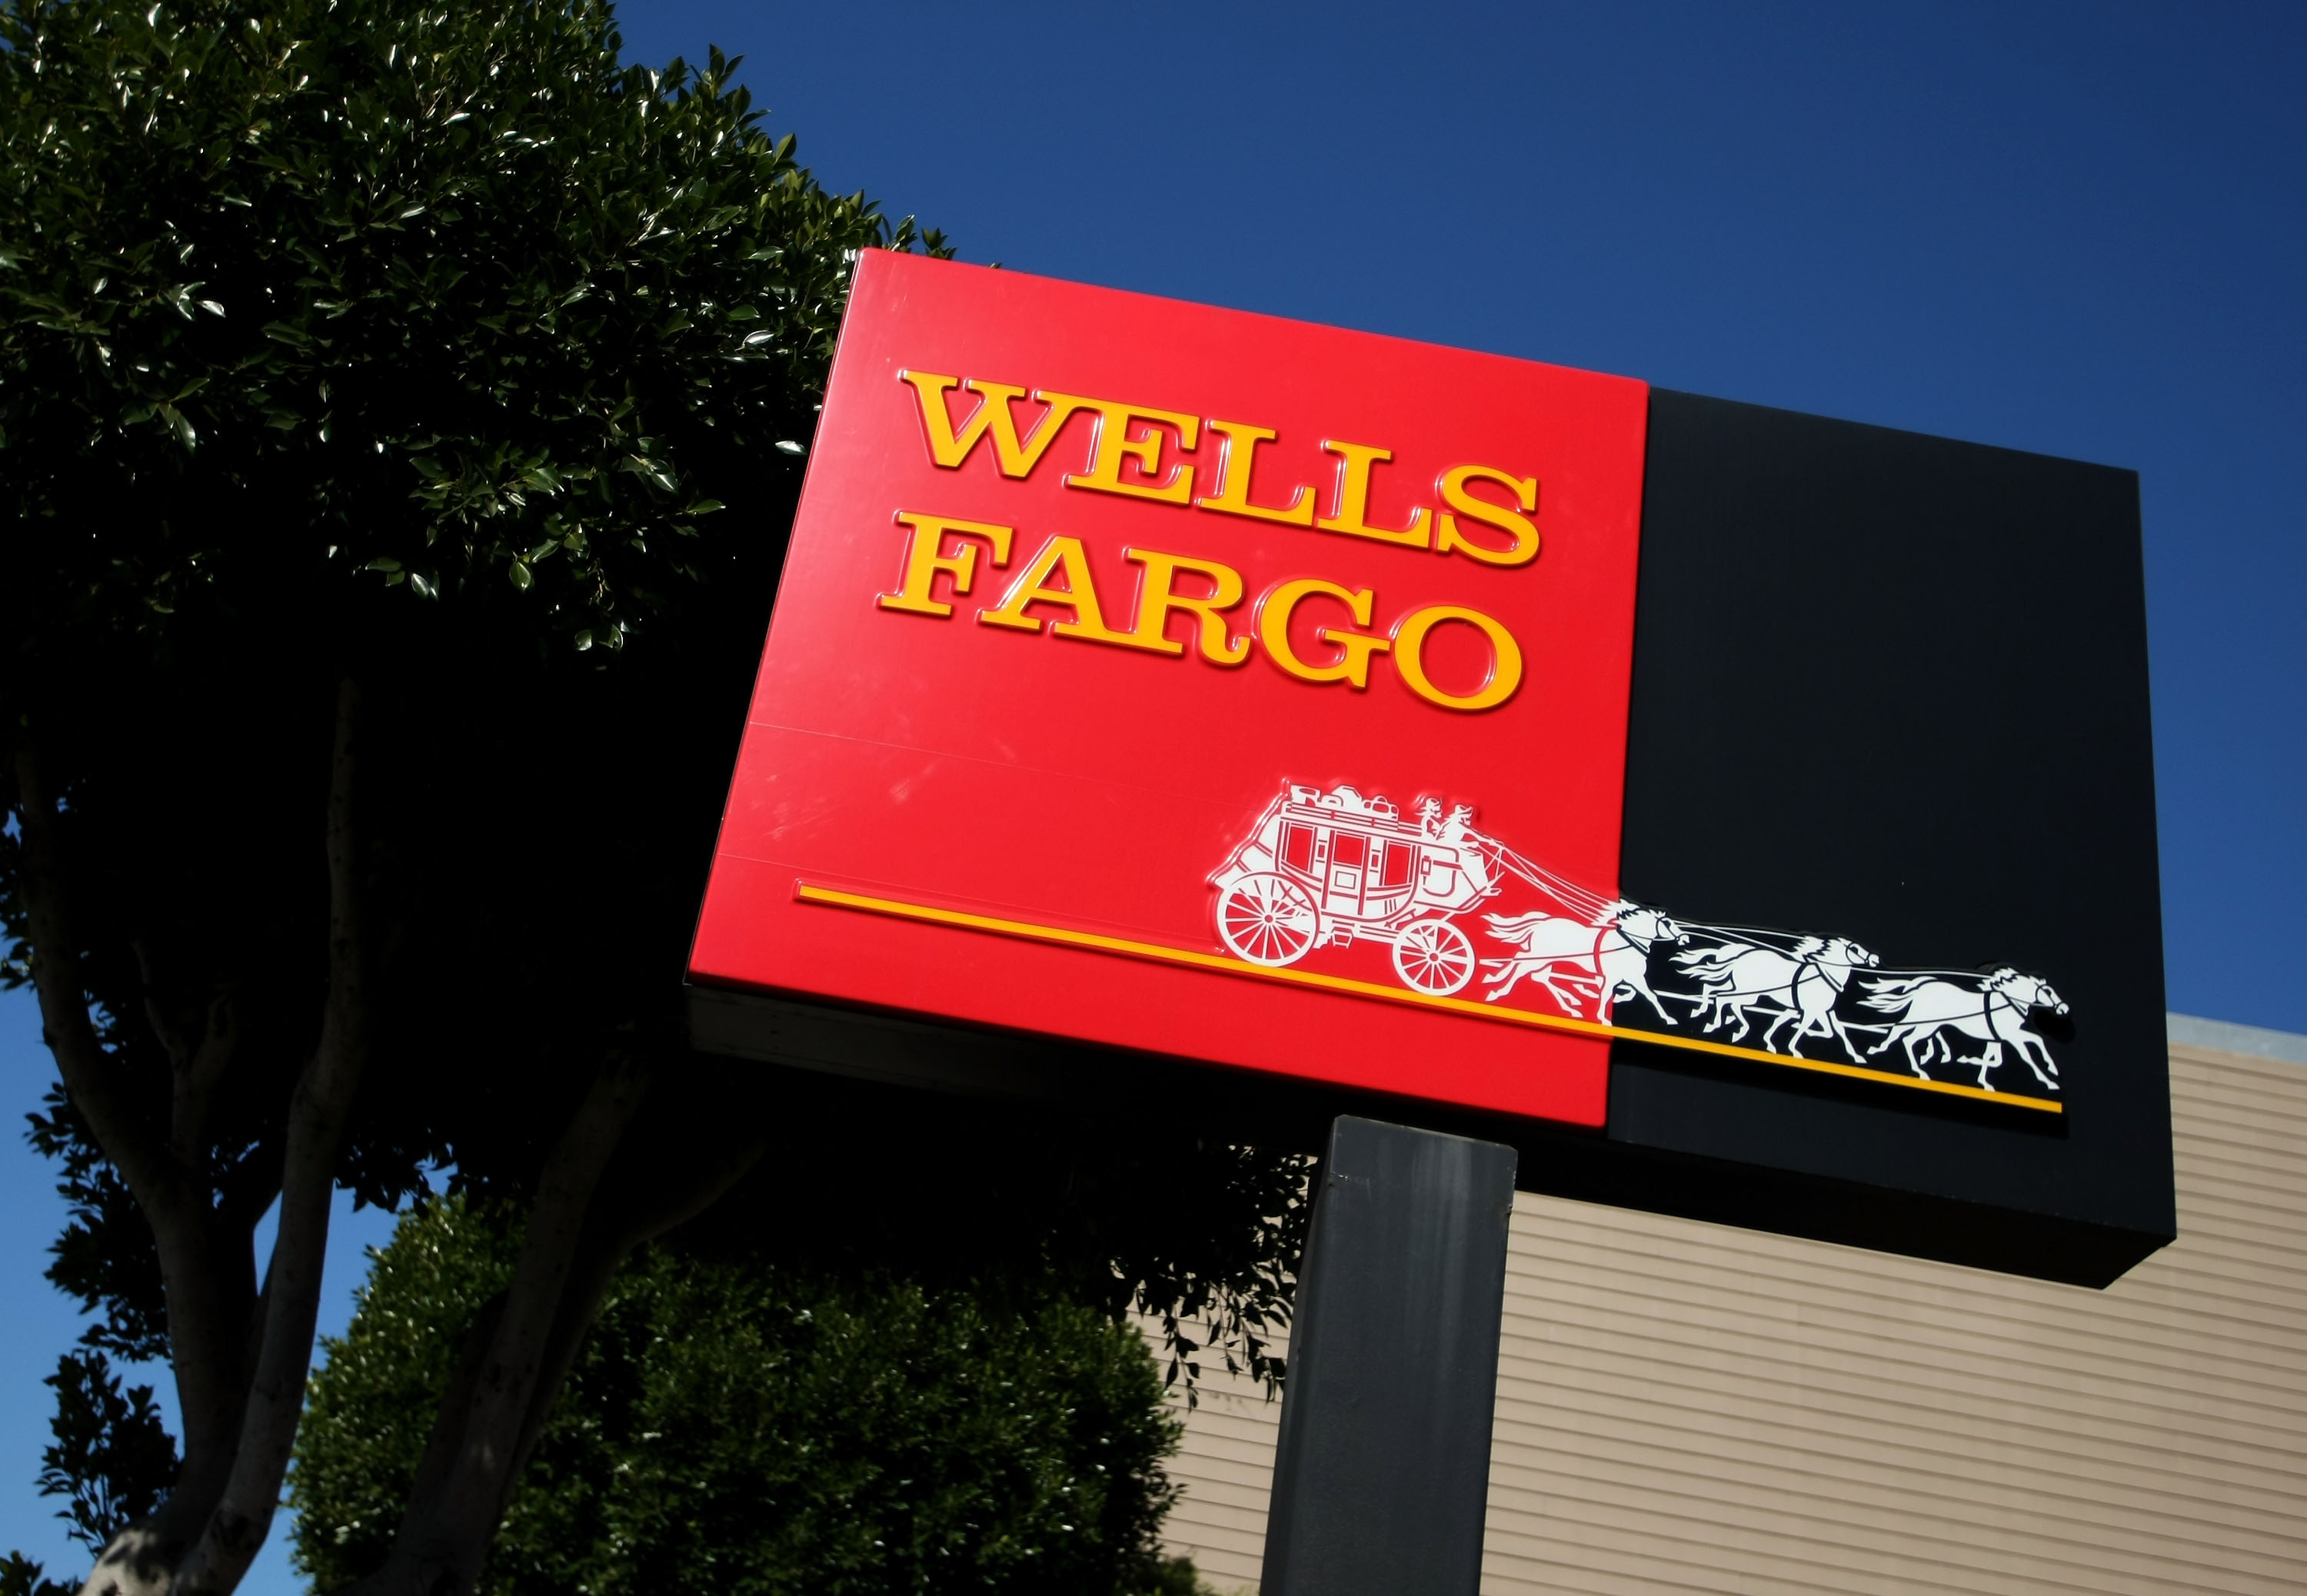 Wells Fargo Reports 11 Percent Drop In Quarterly Earnings